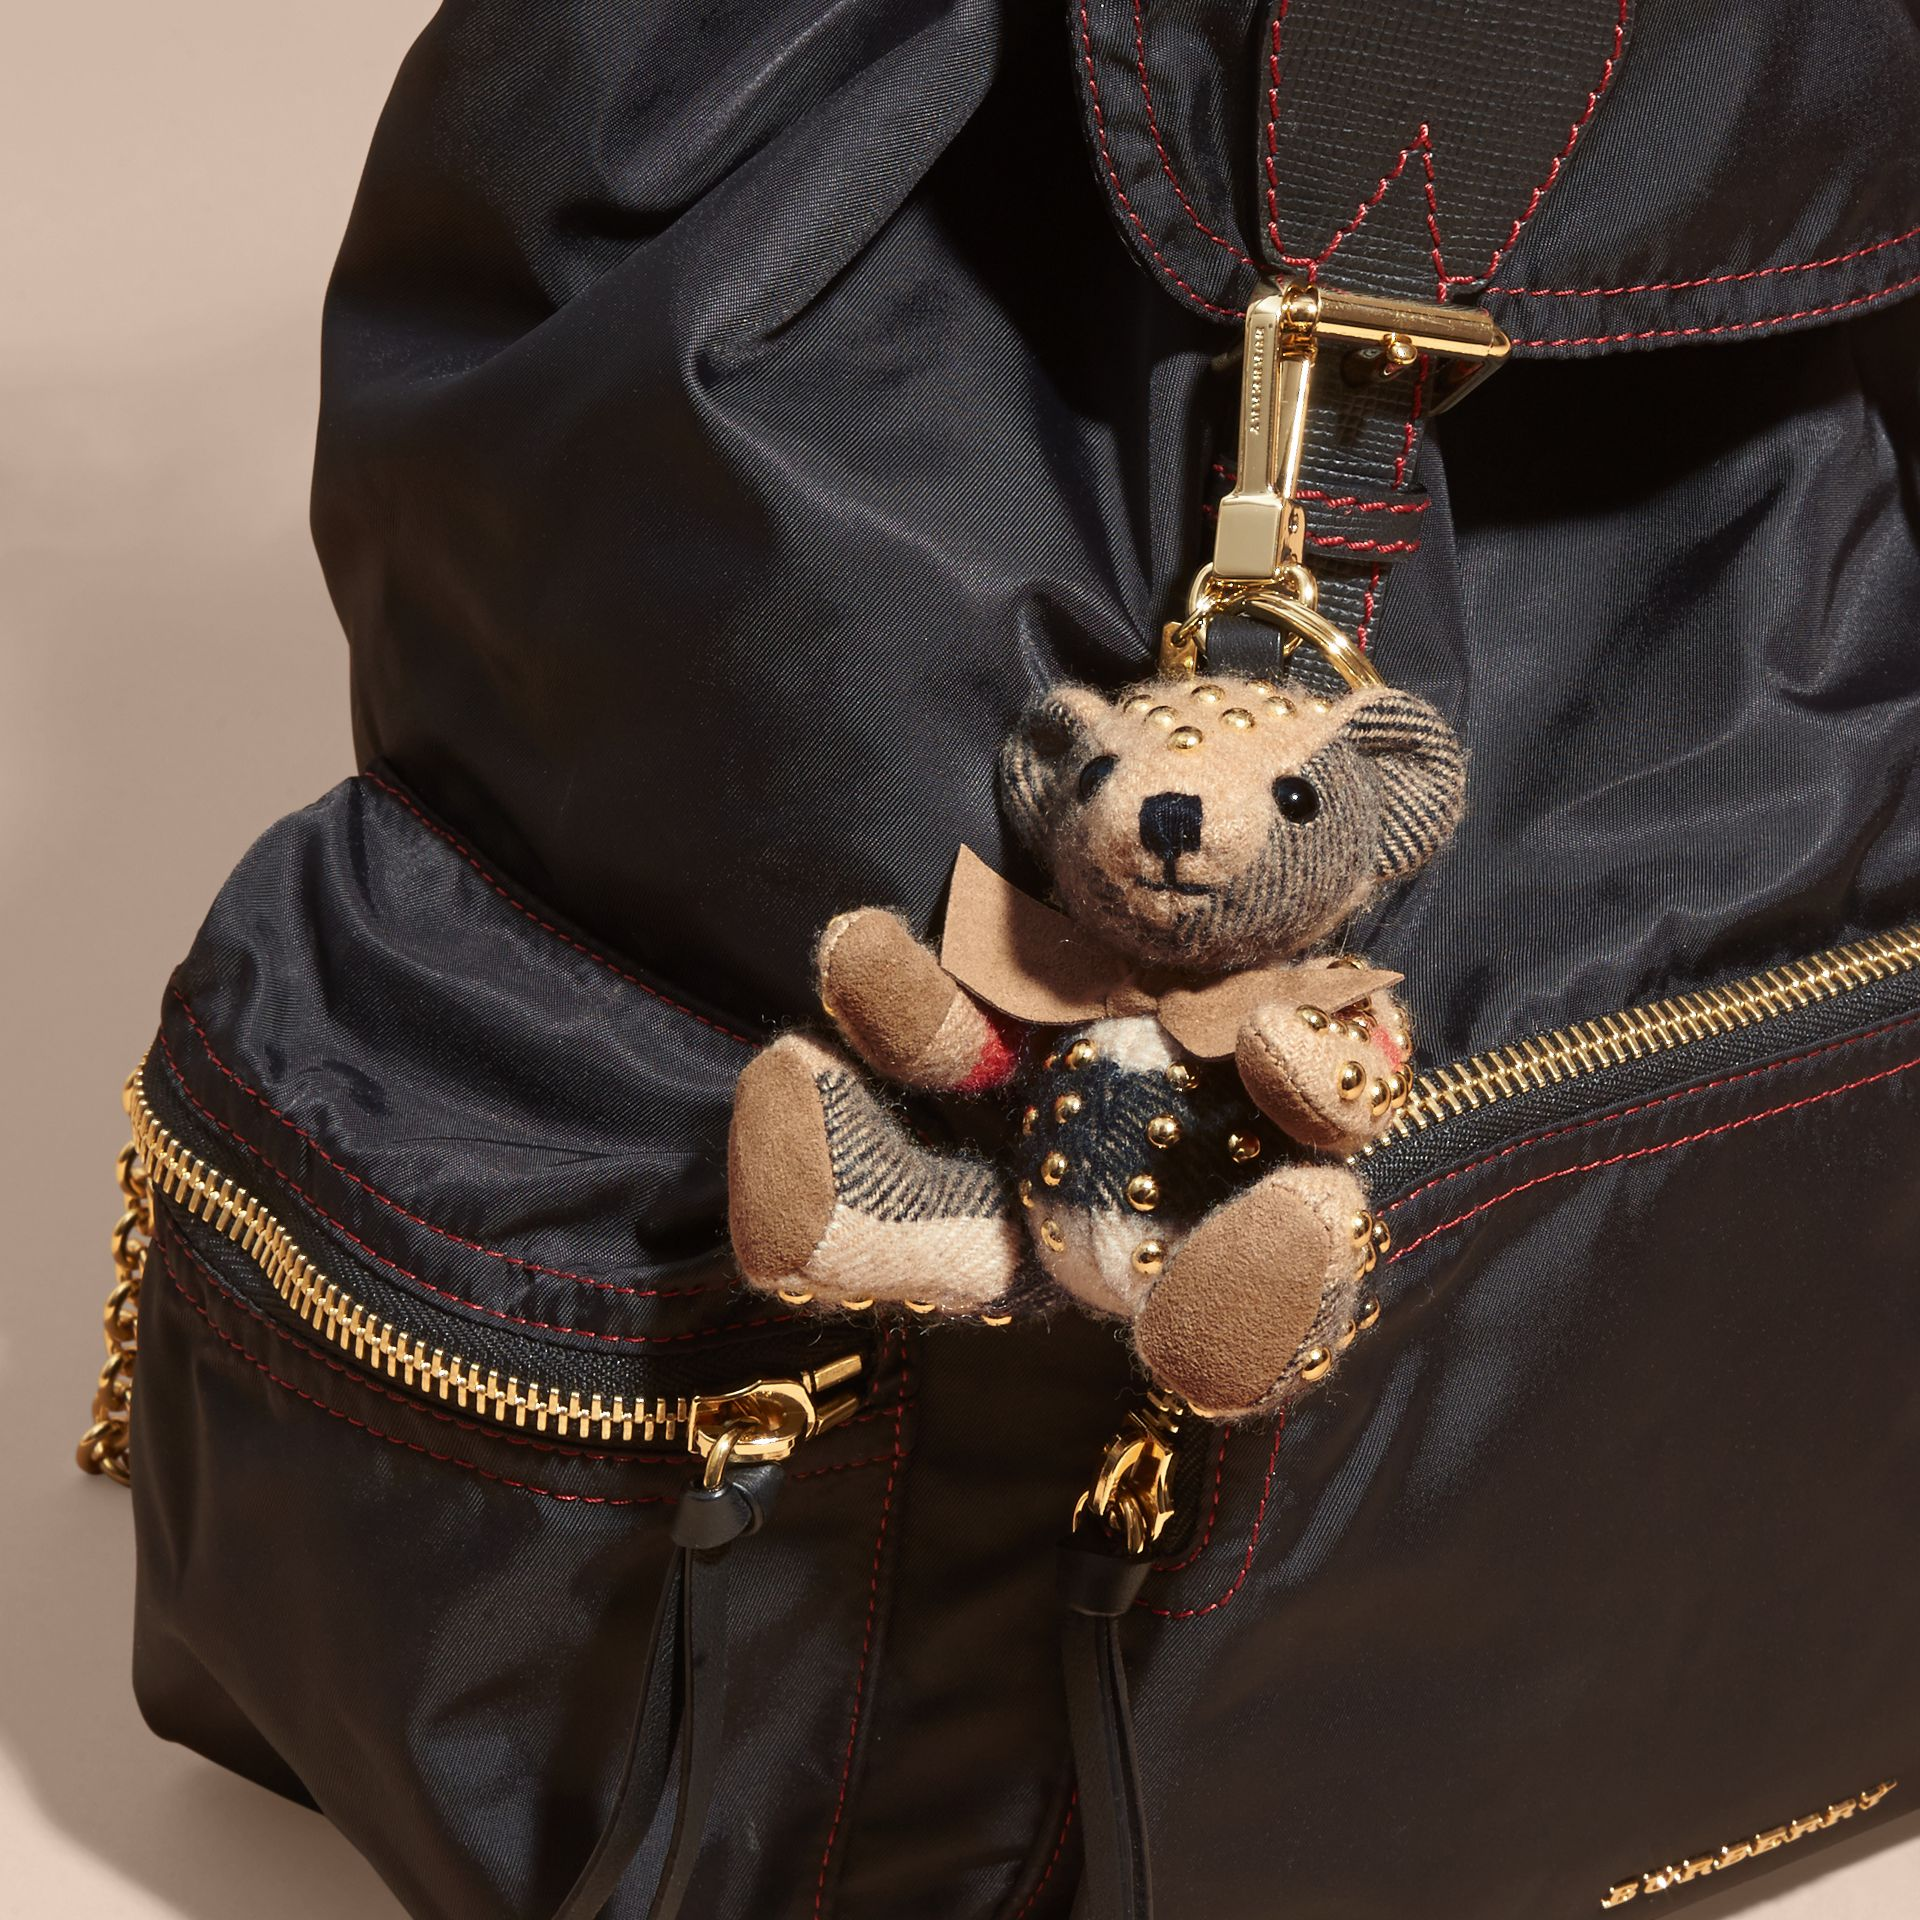 Thomas Bear Charm in Riveted Check Cashmere in Camel - Women | Burberry Australia - gallery image 2